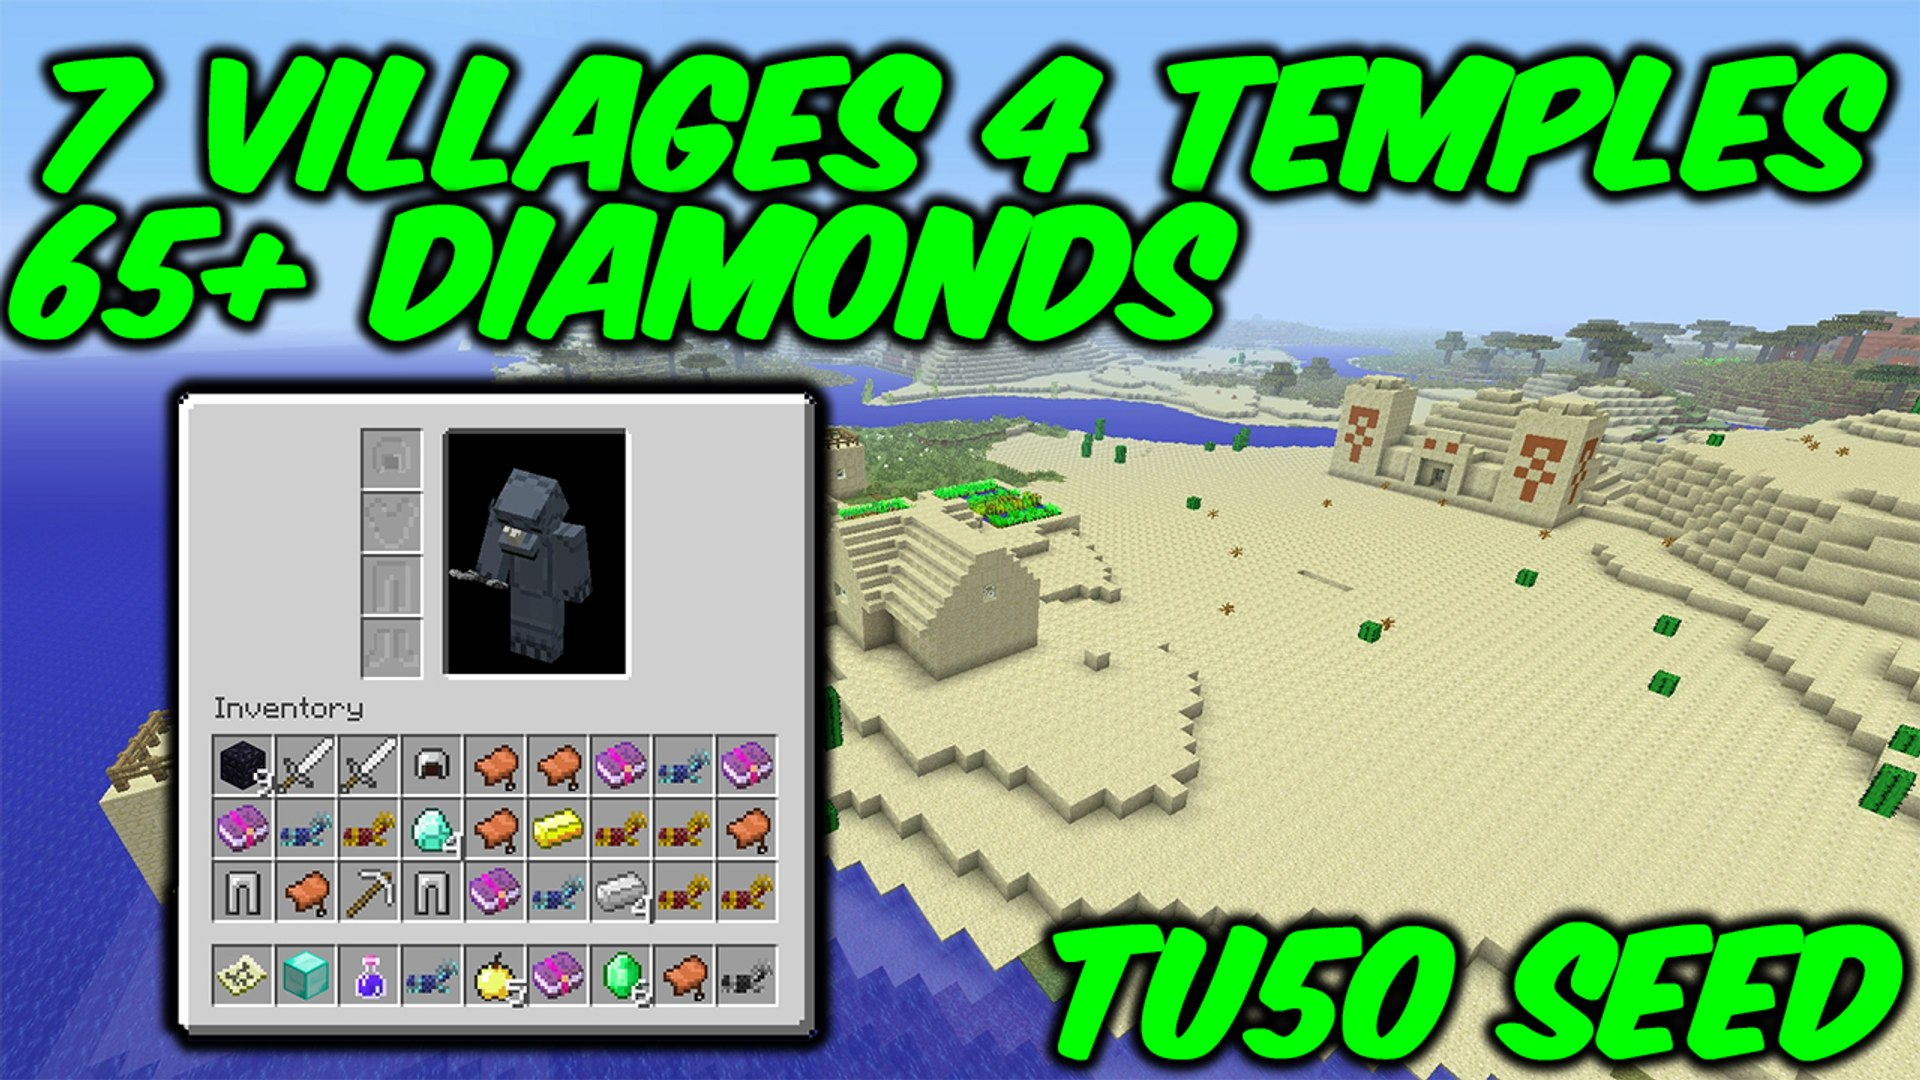 Minecraft Xbox One Ps4 Tu50 Seed 7 Villages 4 Temples 65 Diamonds Video Dailymotion